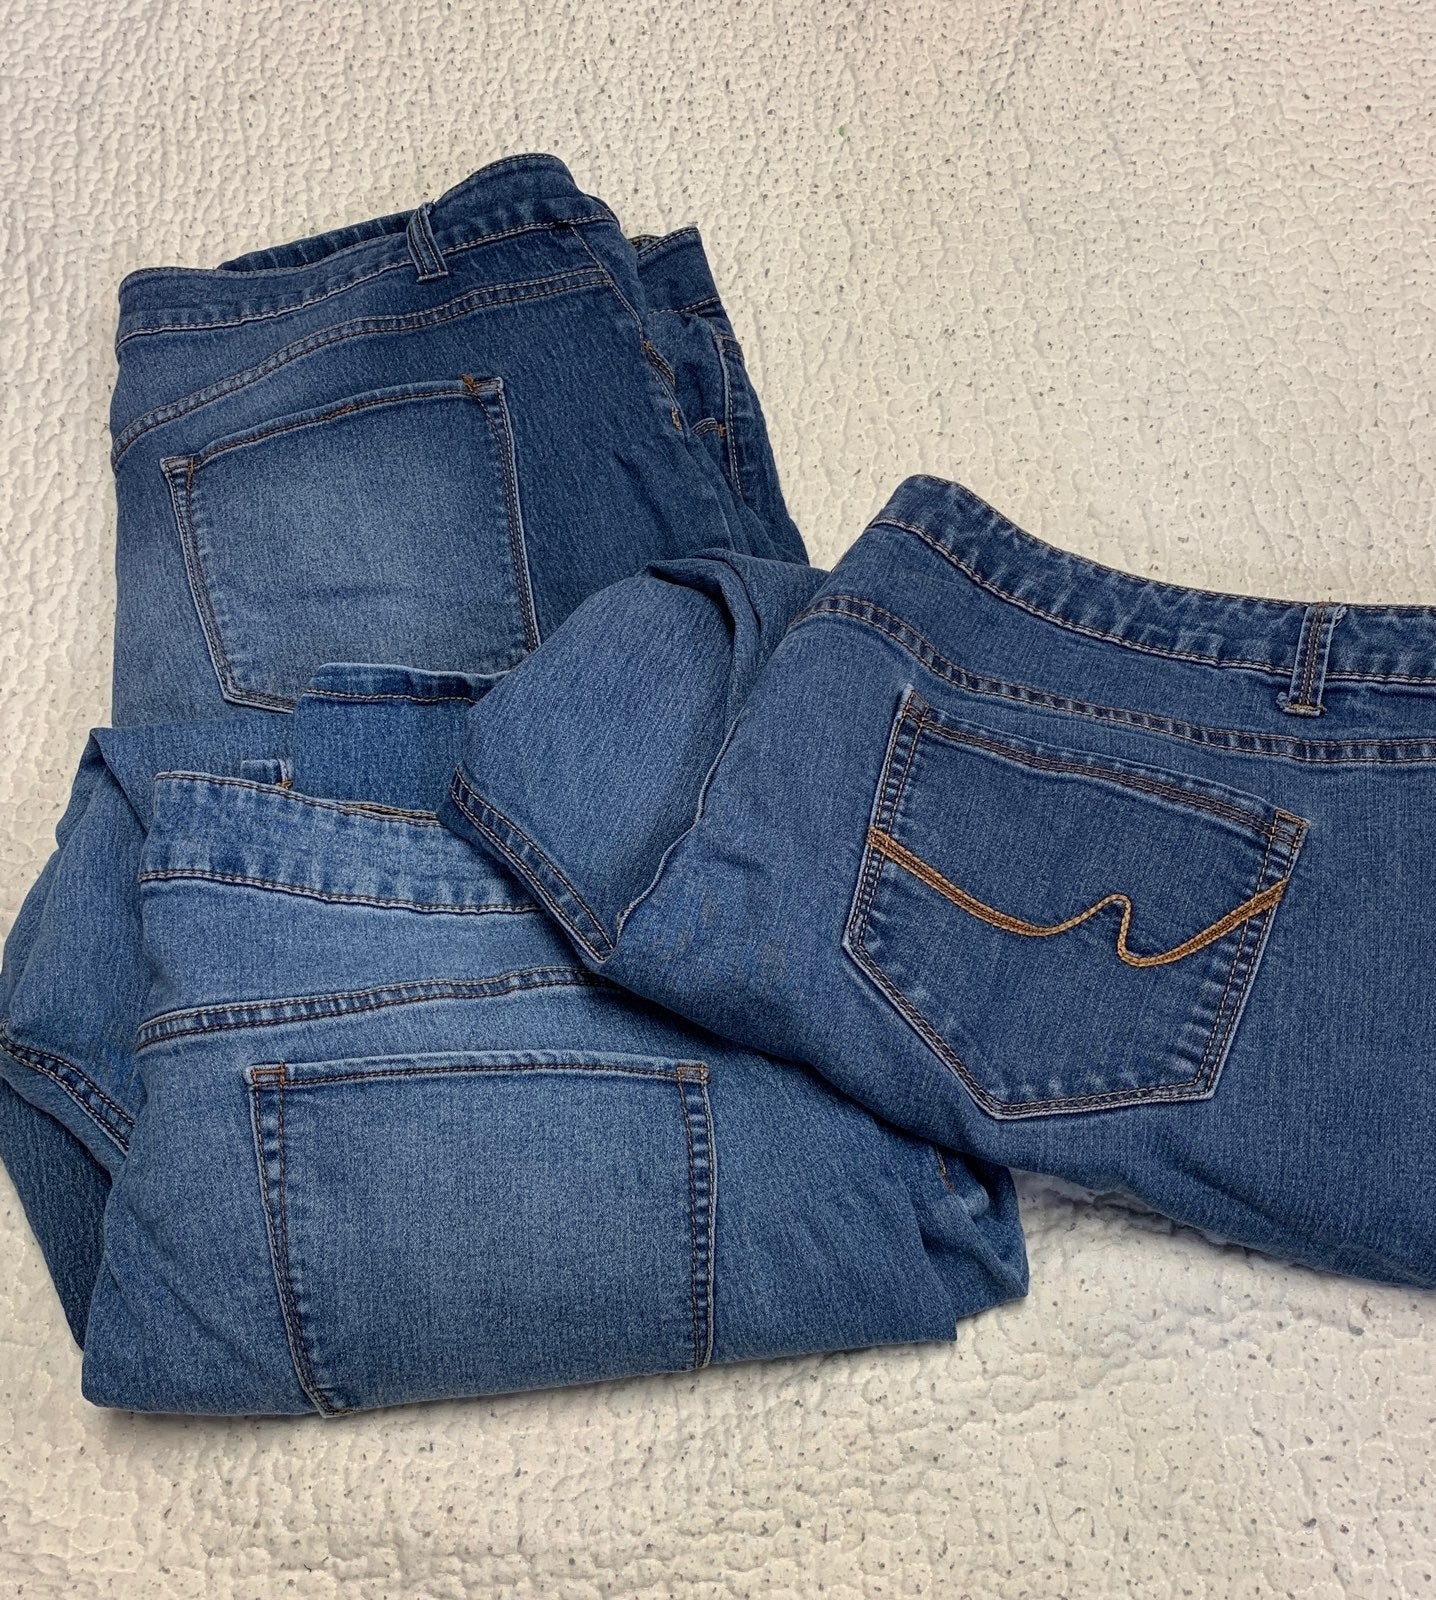 3 pair of 26W Jeans